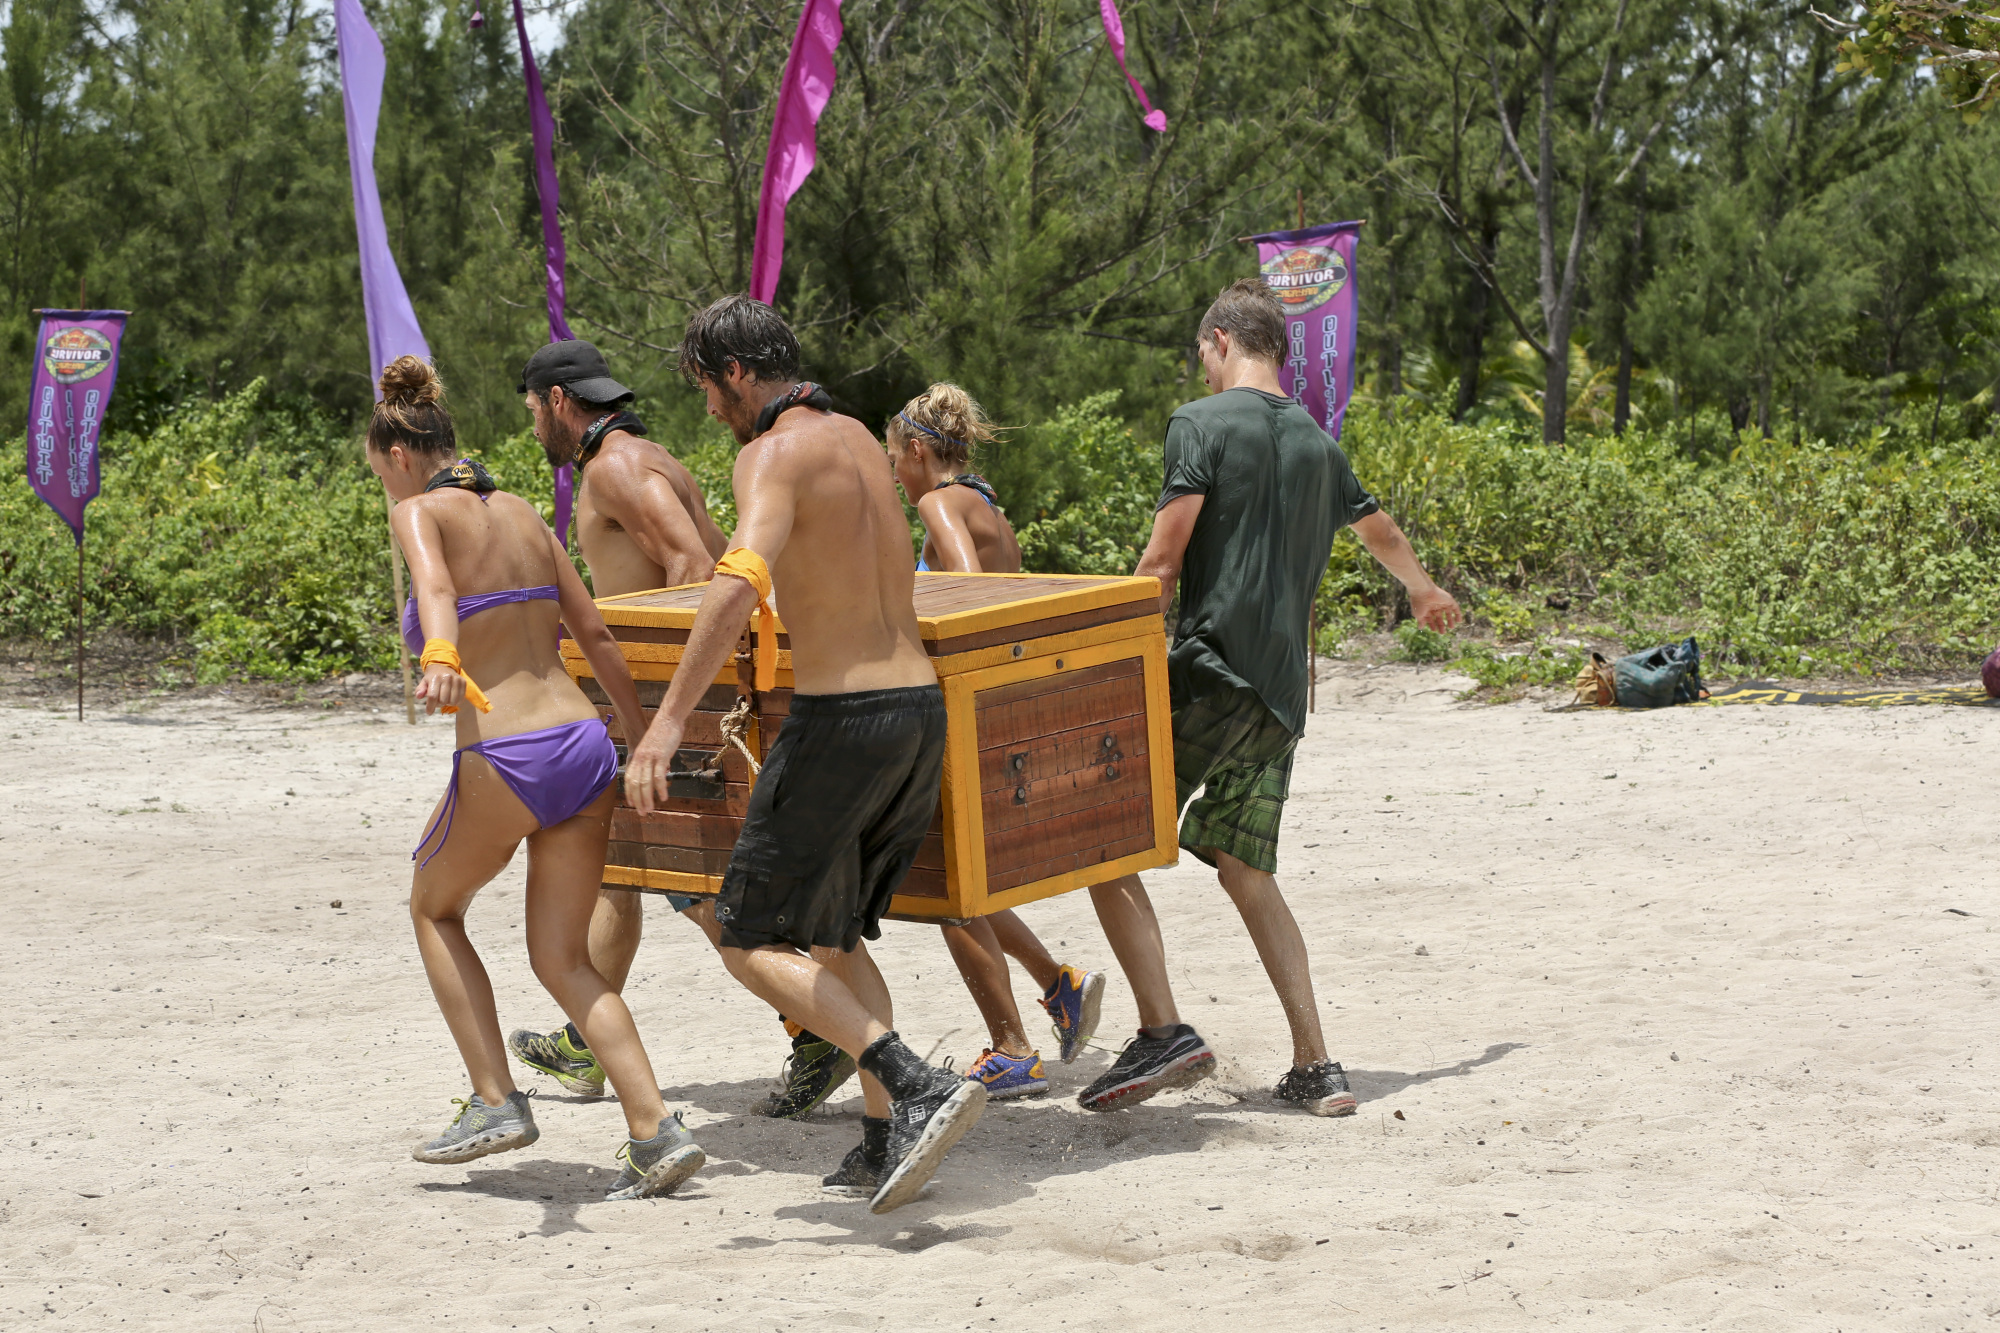 Reward challenge competition in Season 28 Episode 7